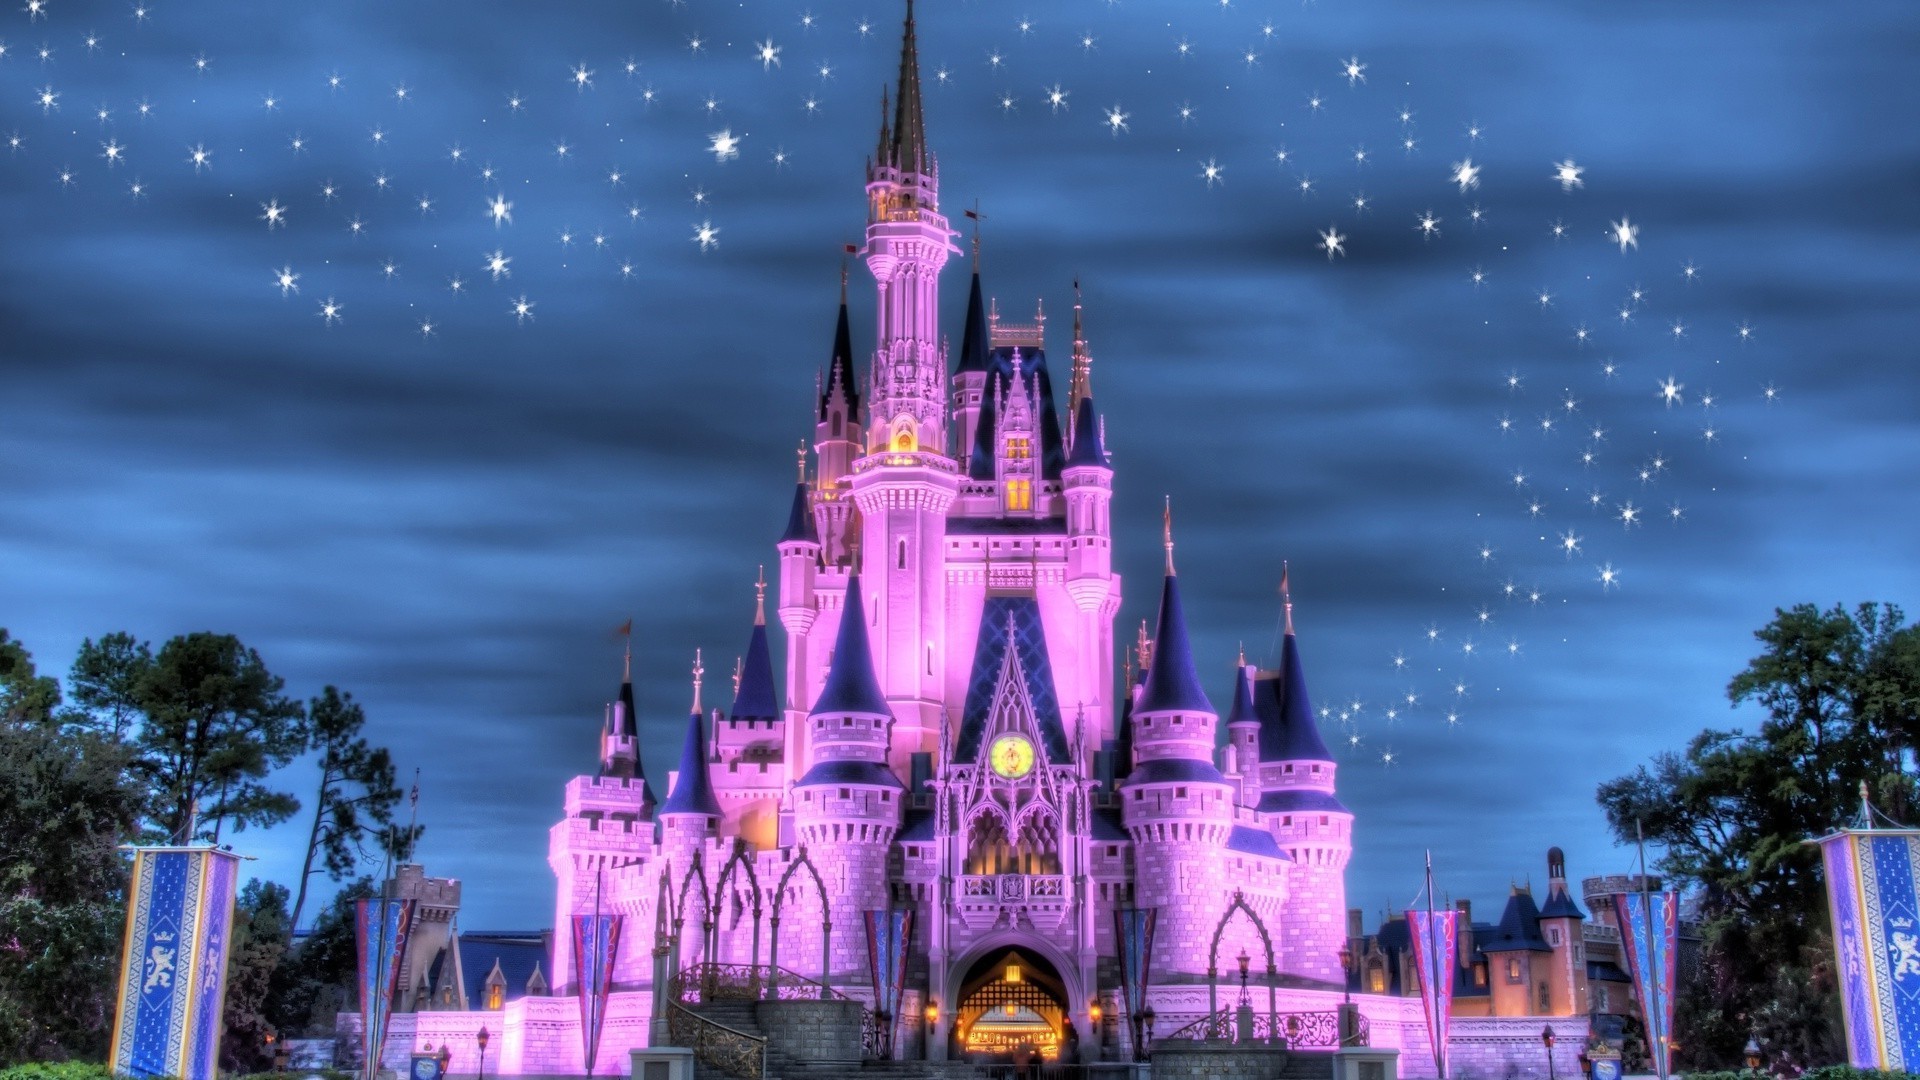 Fairytale Castle Android Wallpapers For Free